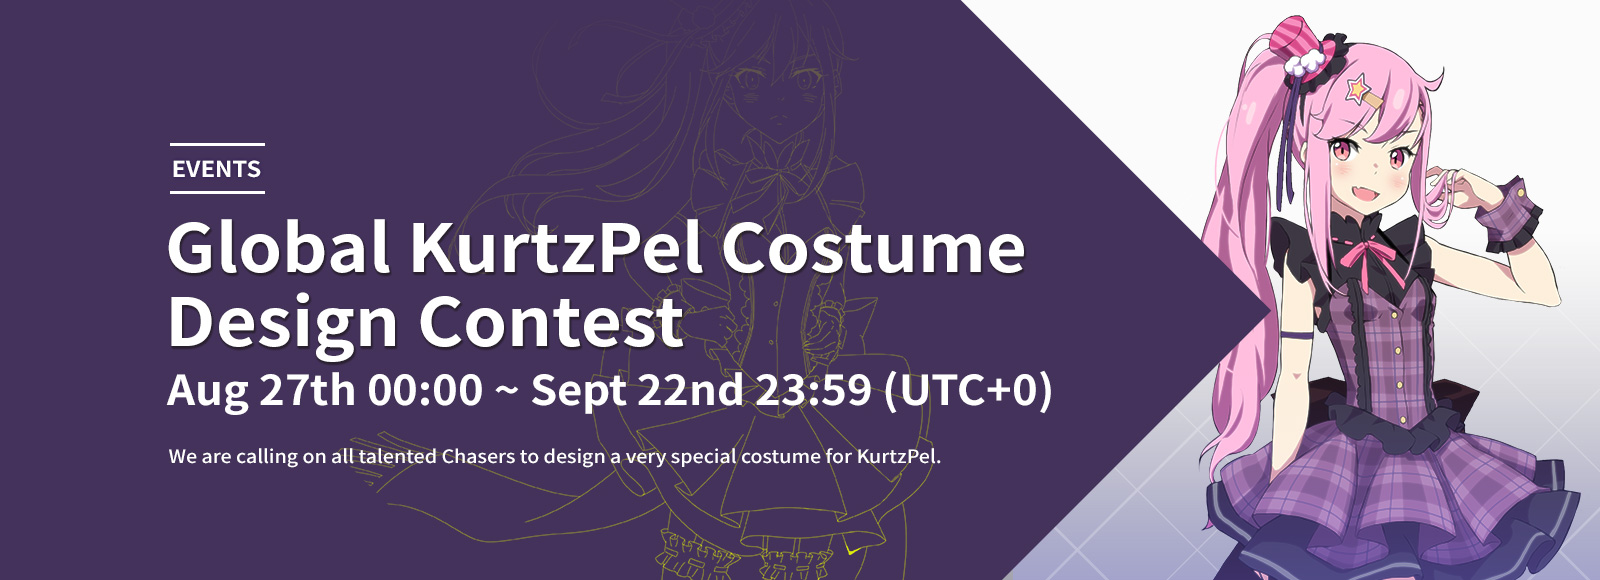 Global KurtzPel Costume Design Contest